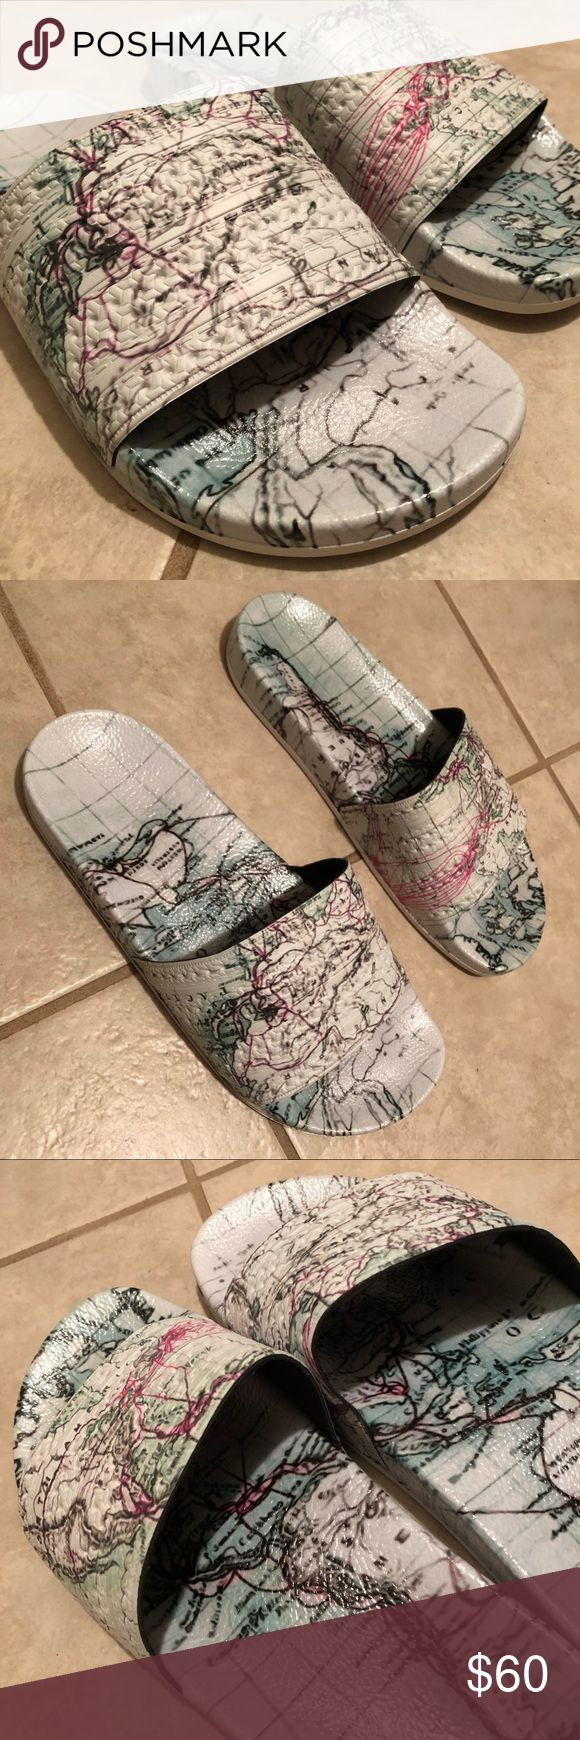 MENS Eddie Huang x Adidas Originals Adilette Slide Eddie Huang x Adidas Originals collaboration slide. Cream colored adilette slipper wrapped in an old world map, representing the world's culinary influence on Huang's signature dishes. WORN ONCE, NO TAGS OR BOX. Perfect condition Adidas Shoes Slippers